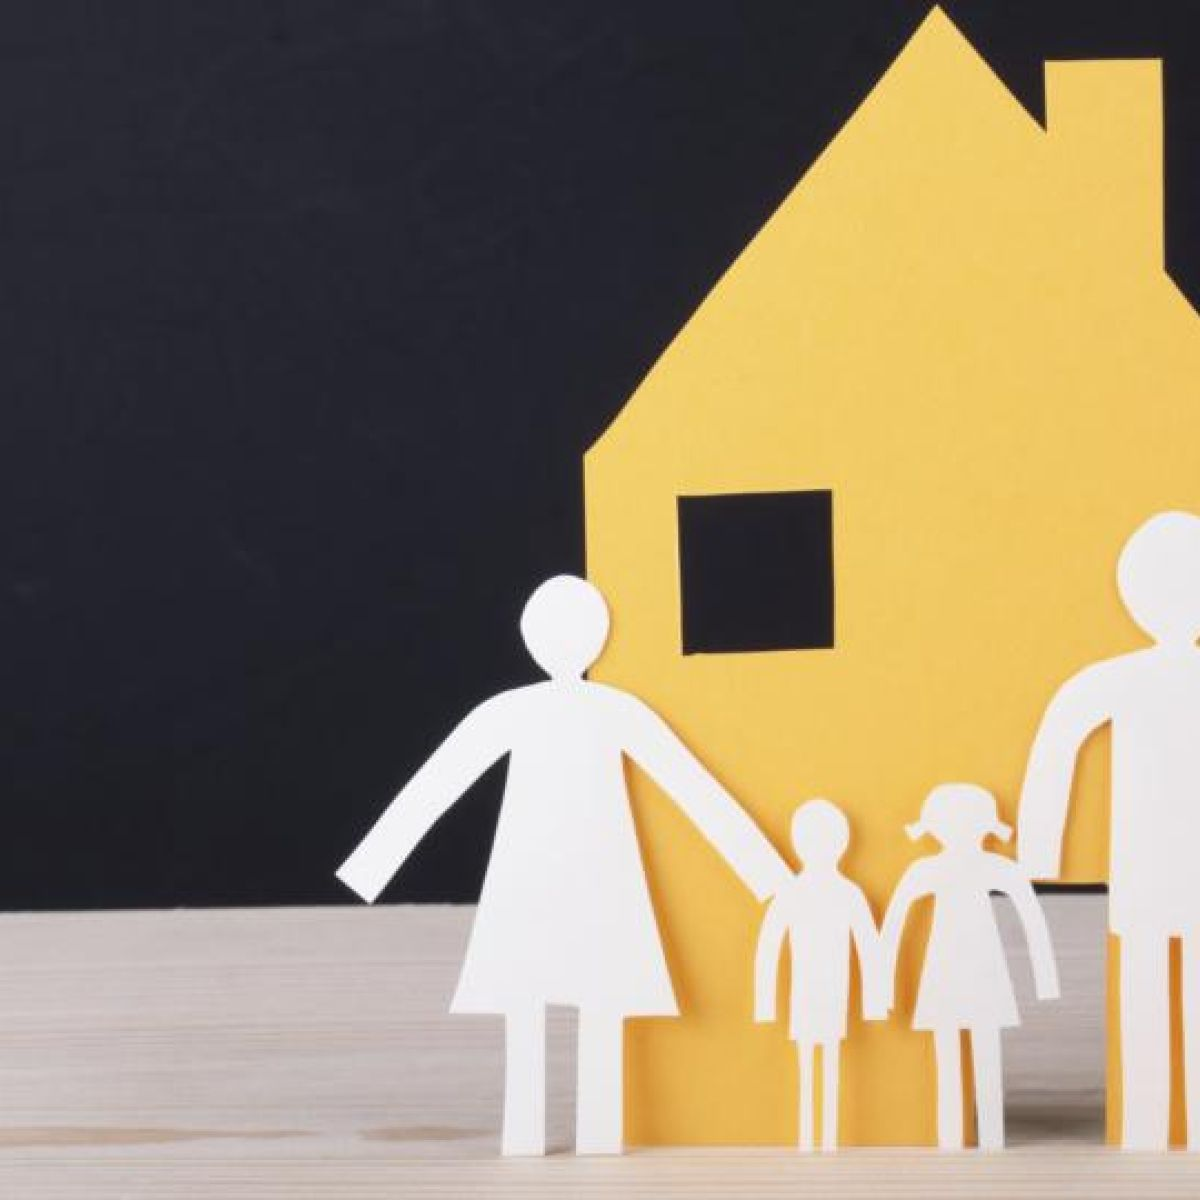 Yes, shop around for home insurance but here's how to get